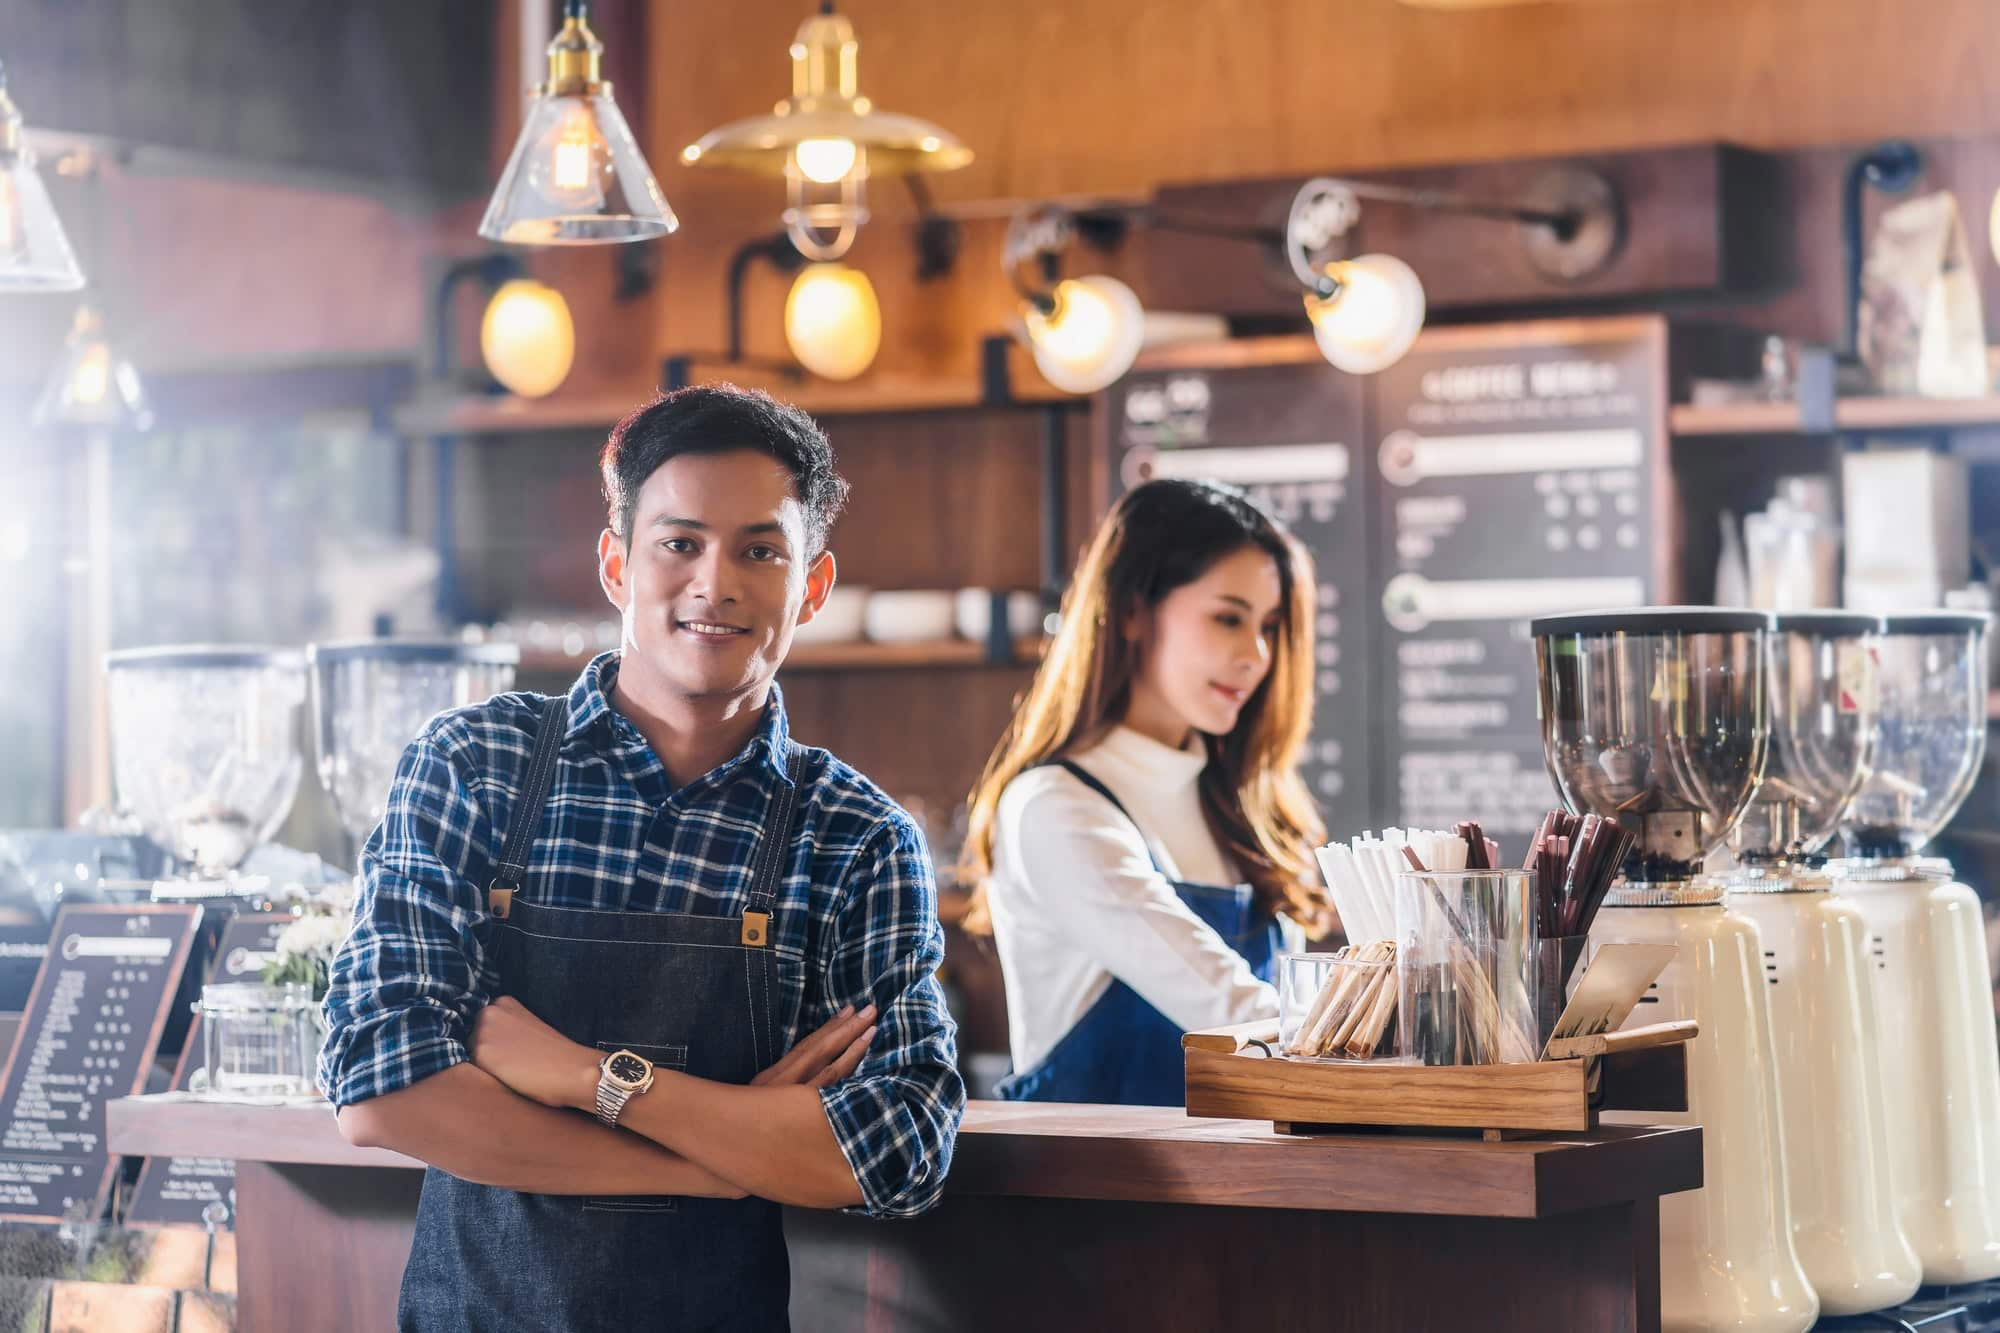 Portrait of Asian Young Small business owner with coffee shop in front of counter bar